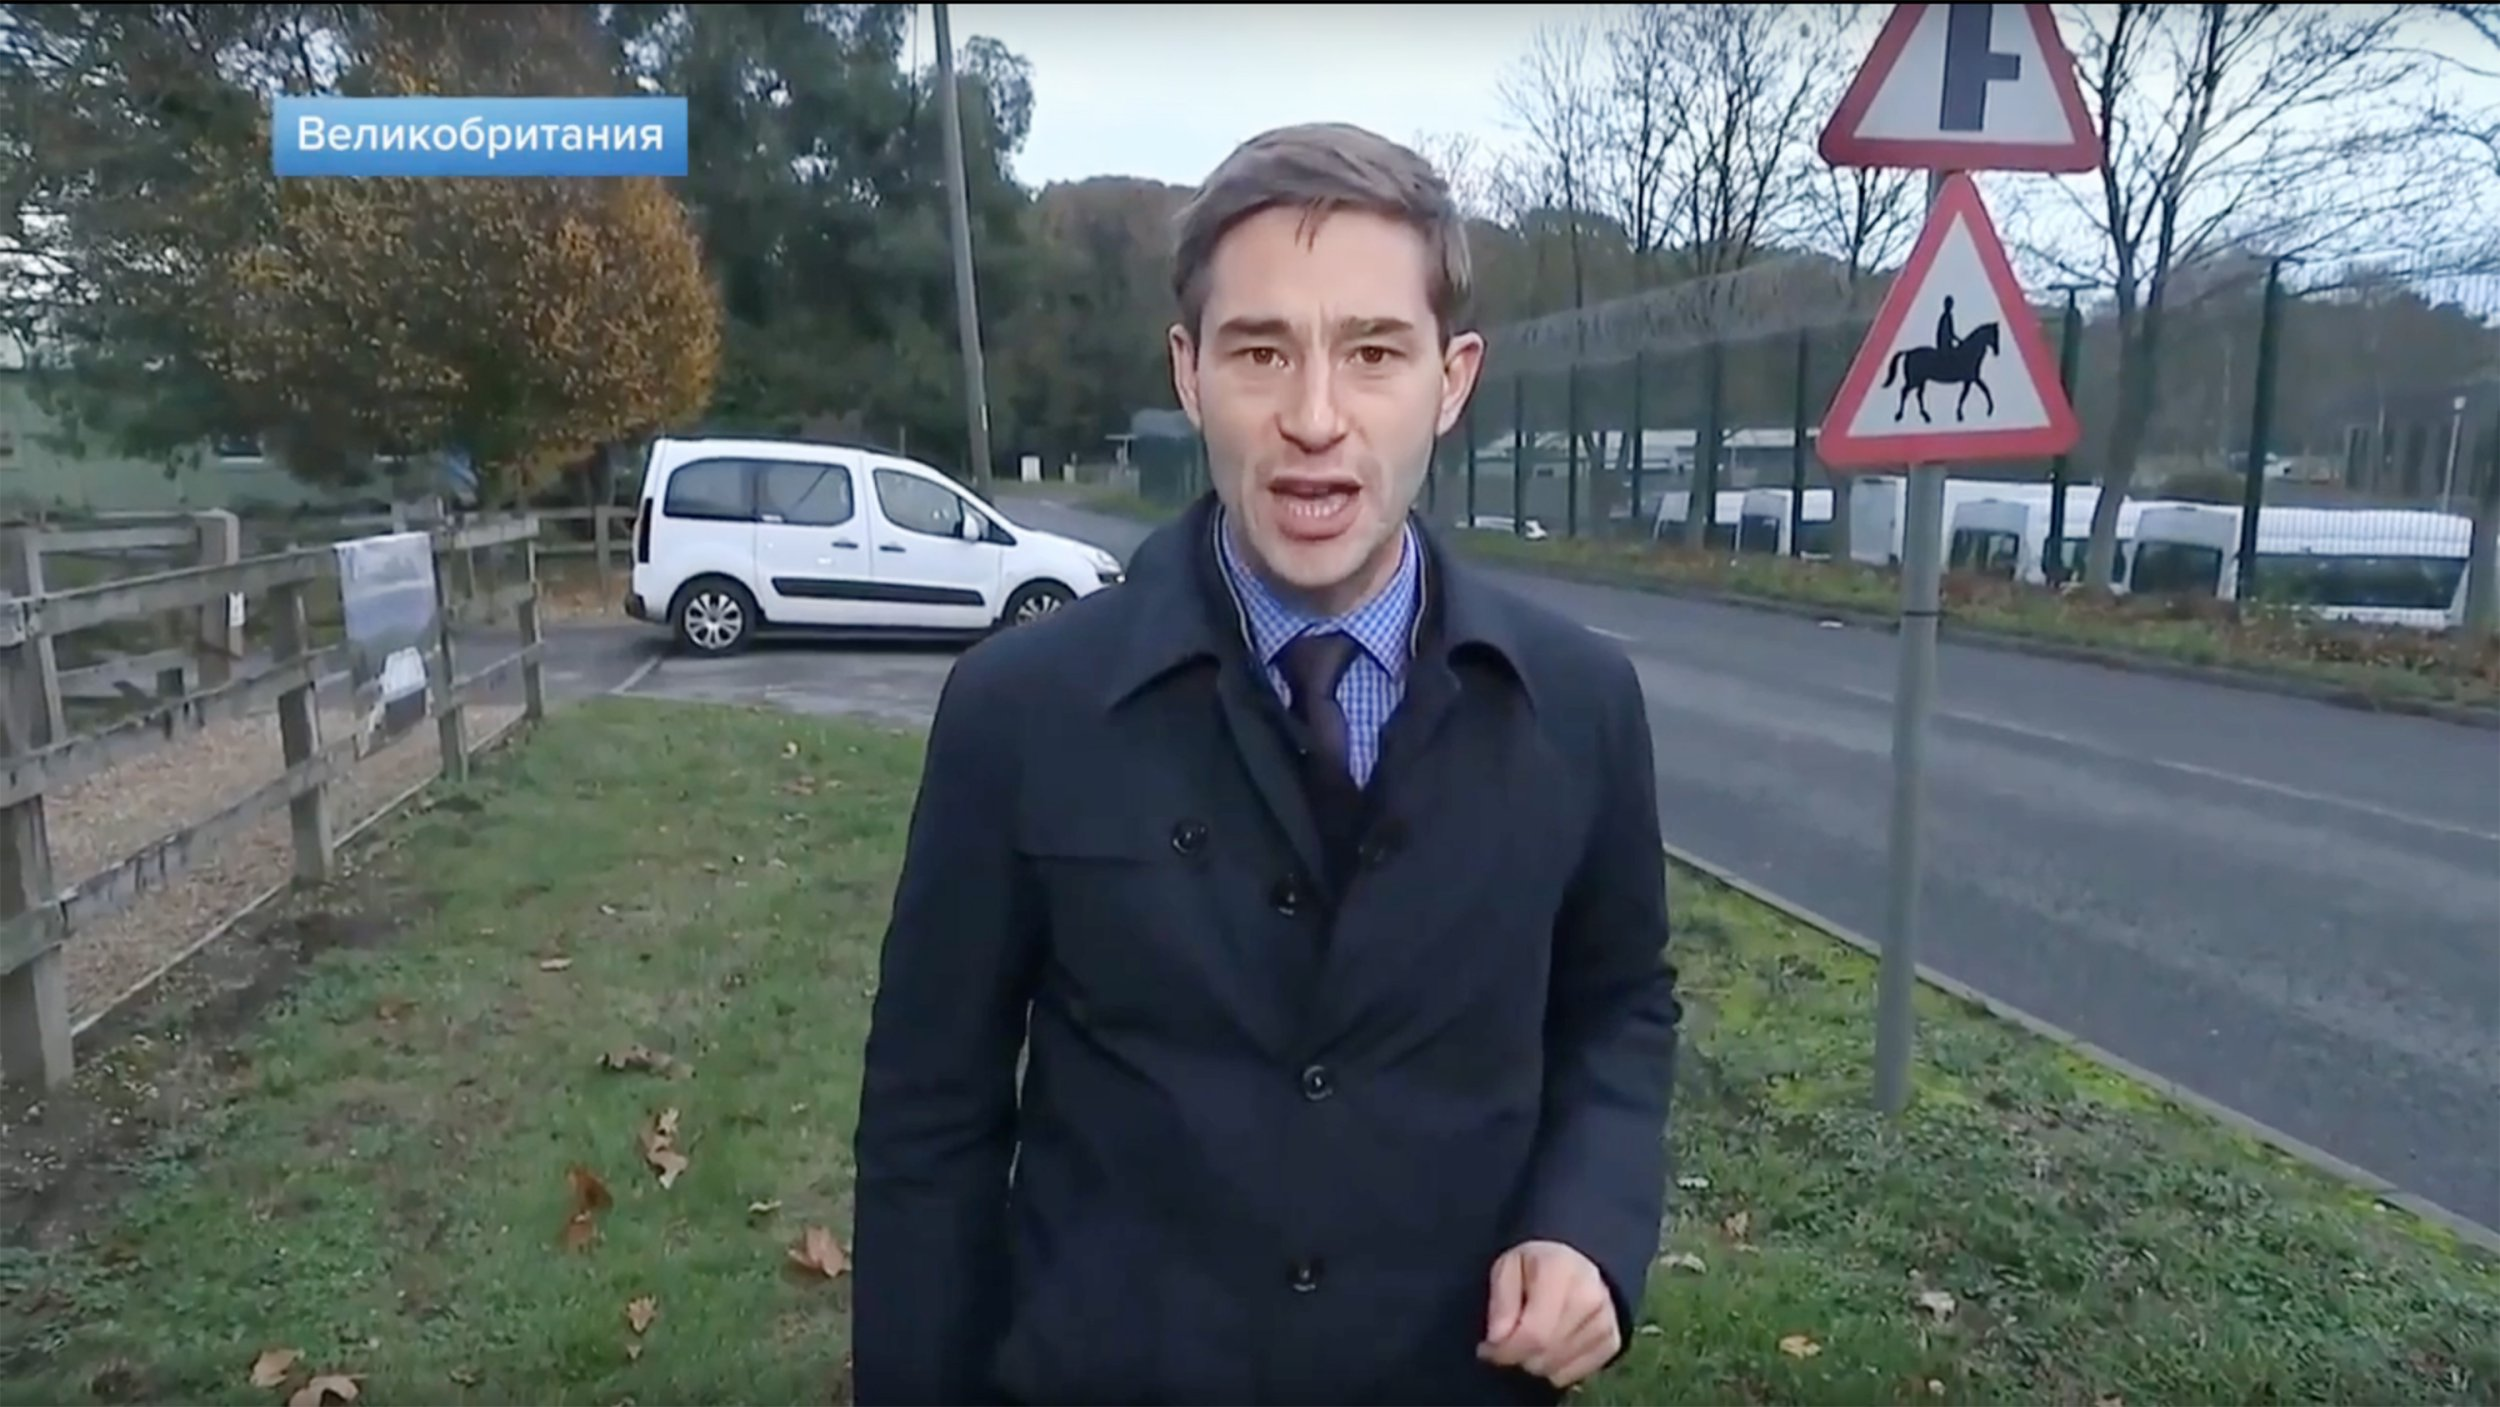 Footage from a Russian Channel 1 television report by Timur Siraziev about the British Army 77th Brigade based at Denison Barracks in Hermitage, Berkshire 22 November. ***TMoS STILLS*** ***MAIL ON SUNDAY USE ONLY - NO SYNDICATION - DO NOT LIBRARY***